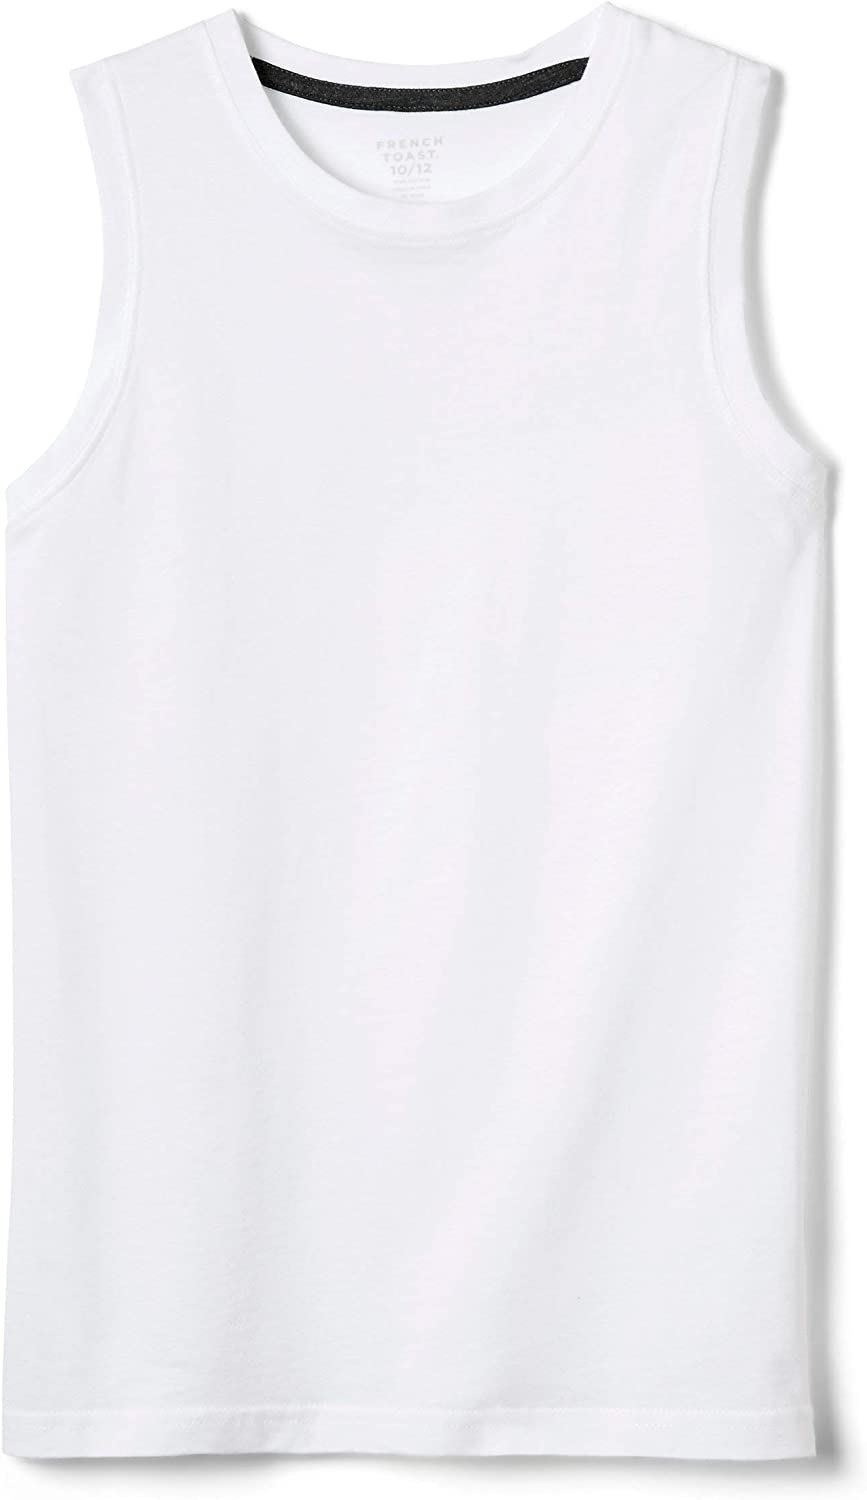 French Toast Boys' Sleeveless Muscle Tee